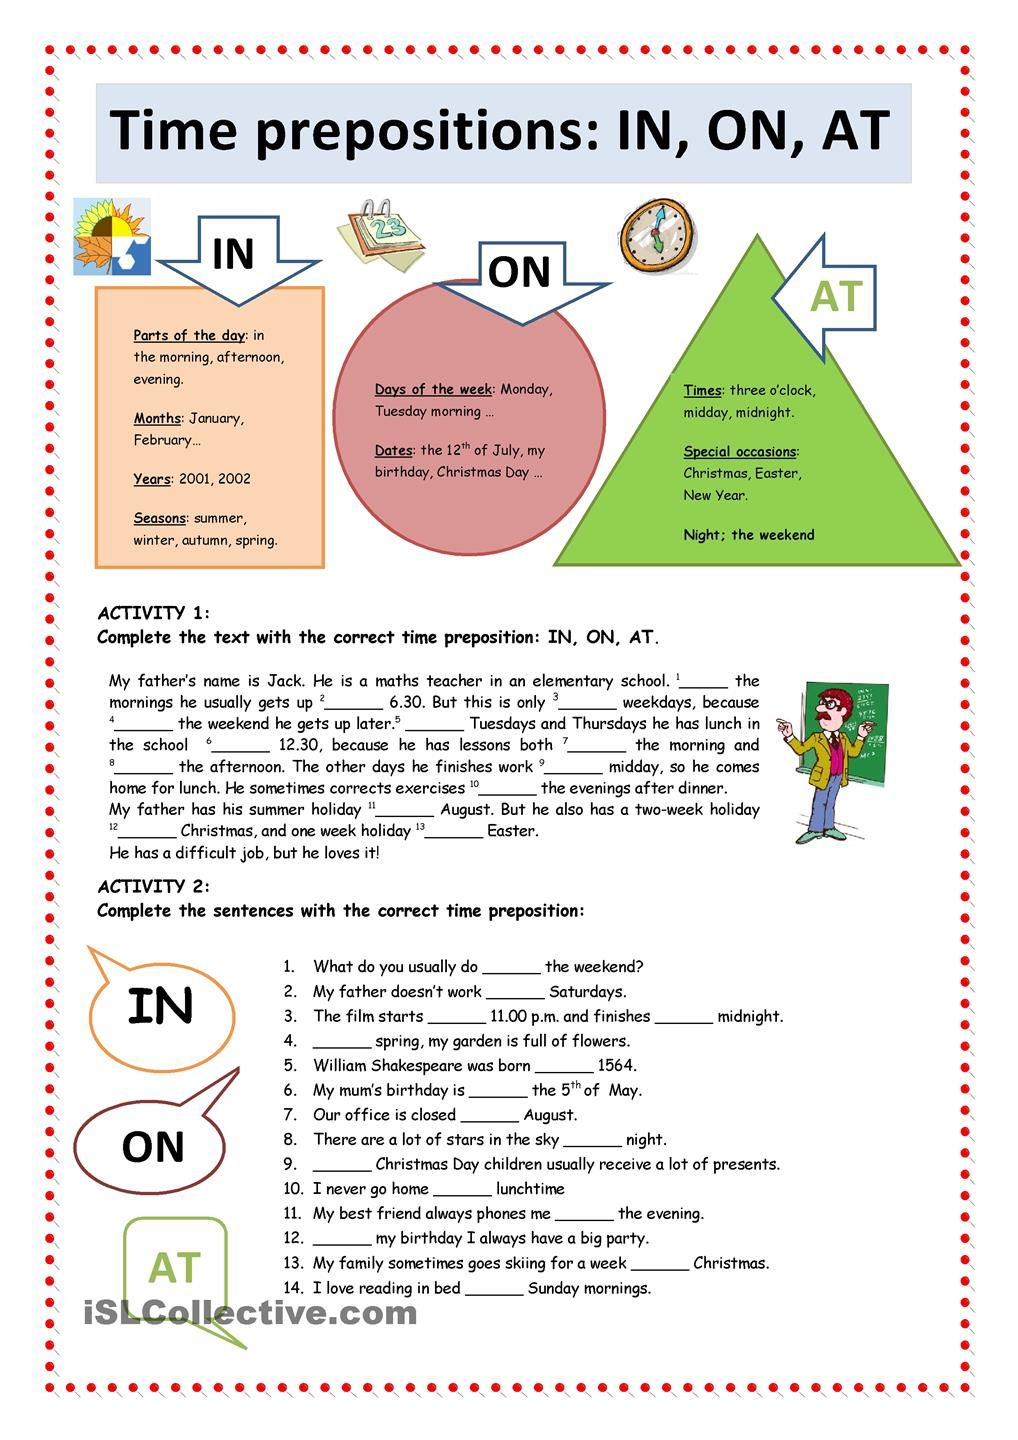 worksheet Prepositions Of Time Worksheet 17 best images about prepositions on pinterest grammar lessons student centered resources and esl